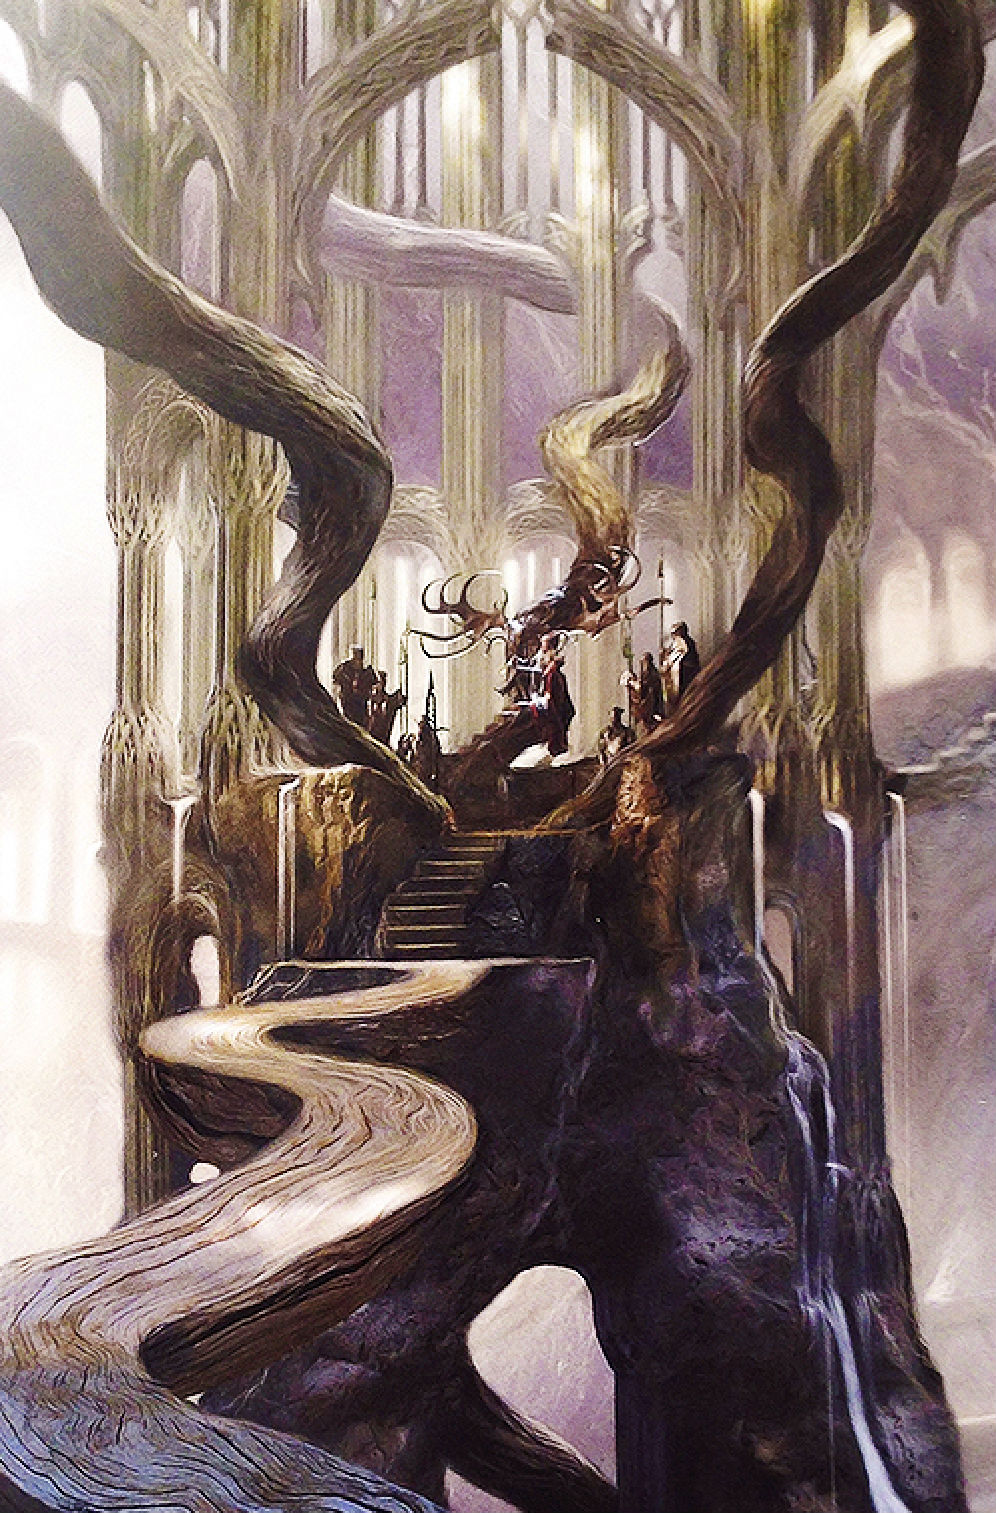 Thranduil_throne_room.jpg